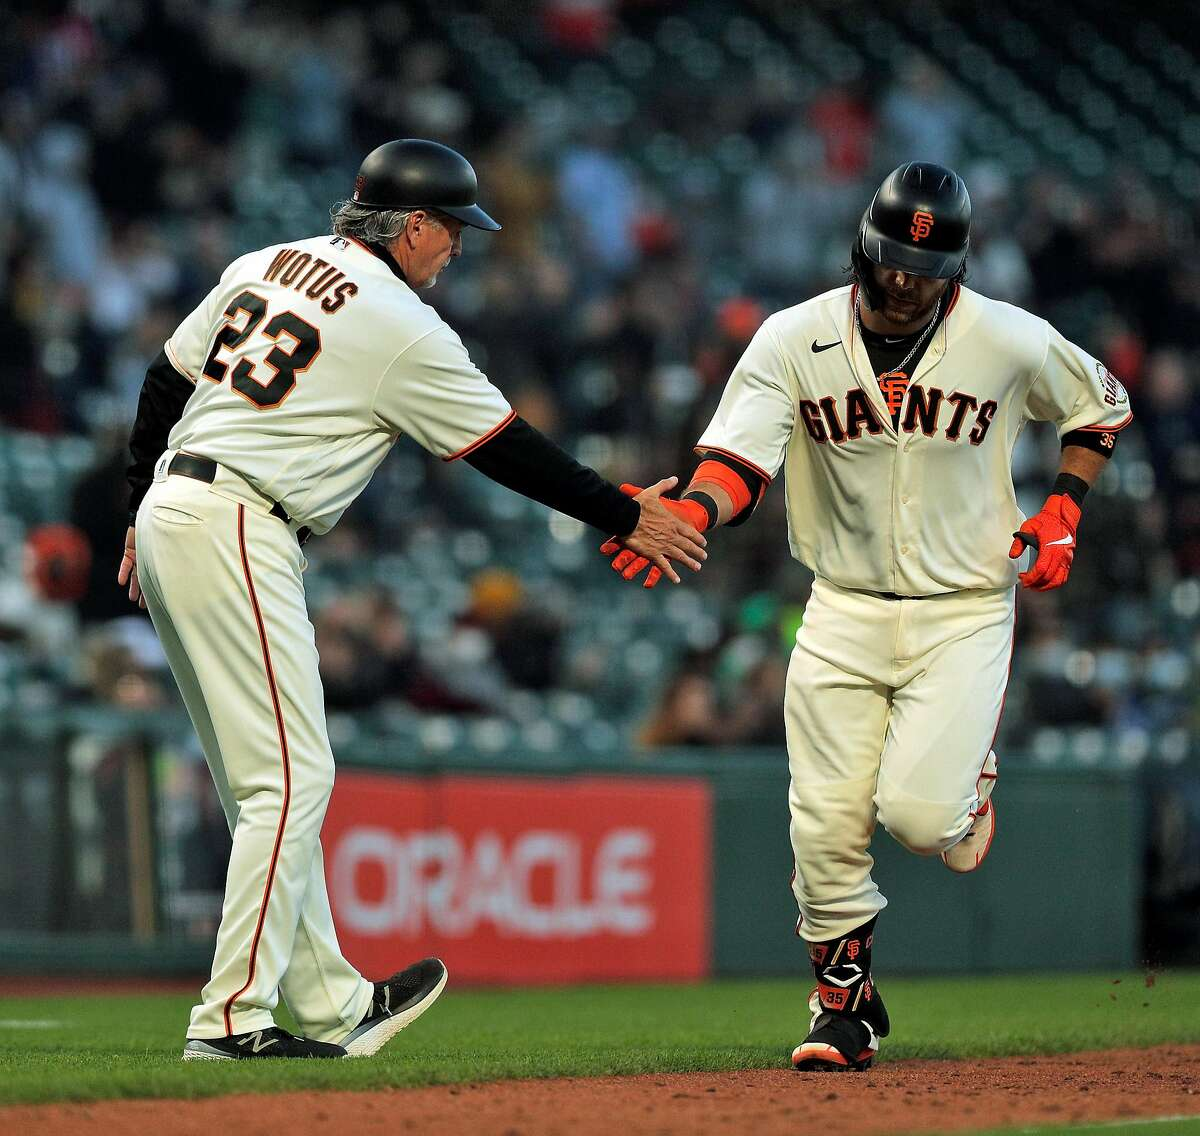 Brandon Crawford (35) high fives third base coach Ron Wotus (23) after hitting his two-run homerun in the fifth inning as the San Francisco Giants played the Arizona Diamondbacks at Oracle Park in San Francisco, Calif., on Monday, June 14, 2021.